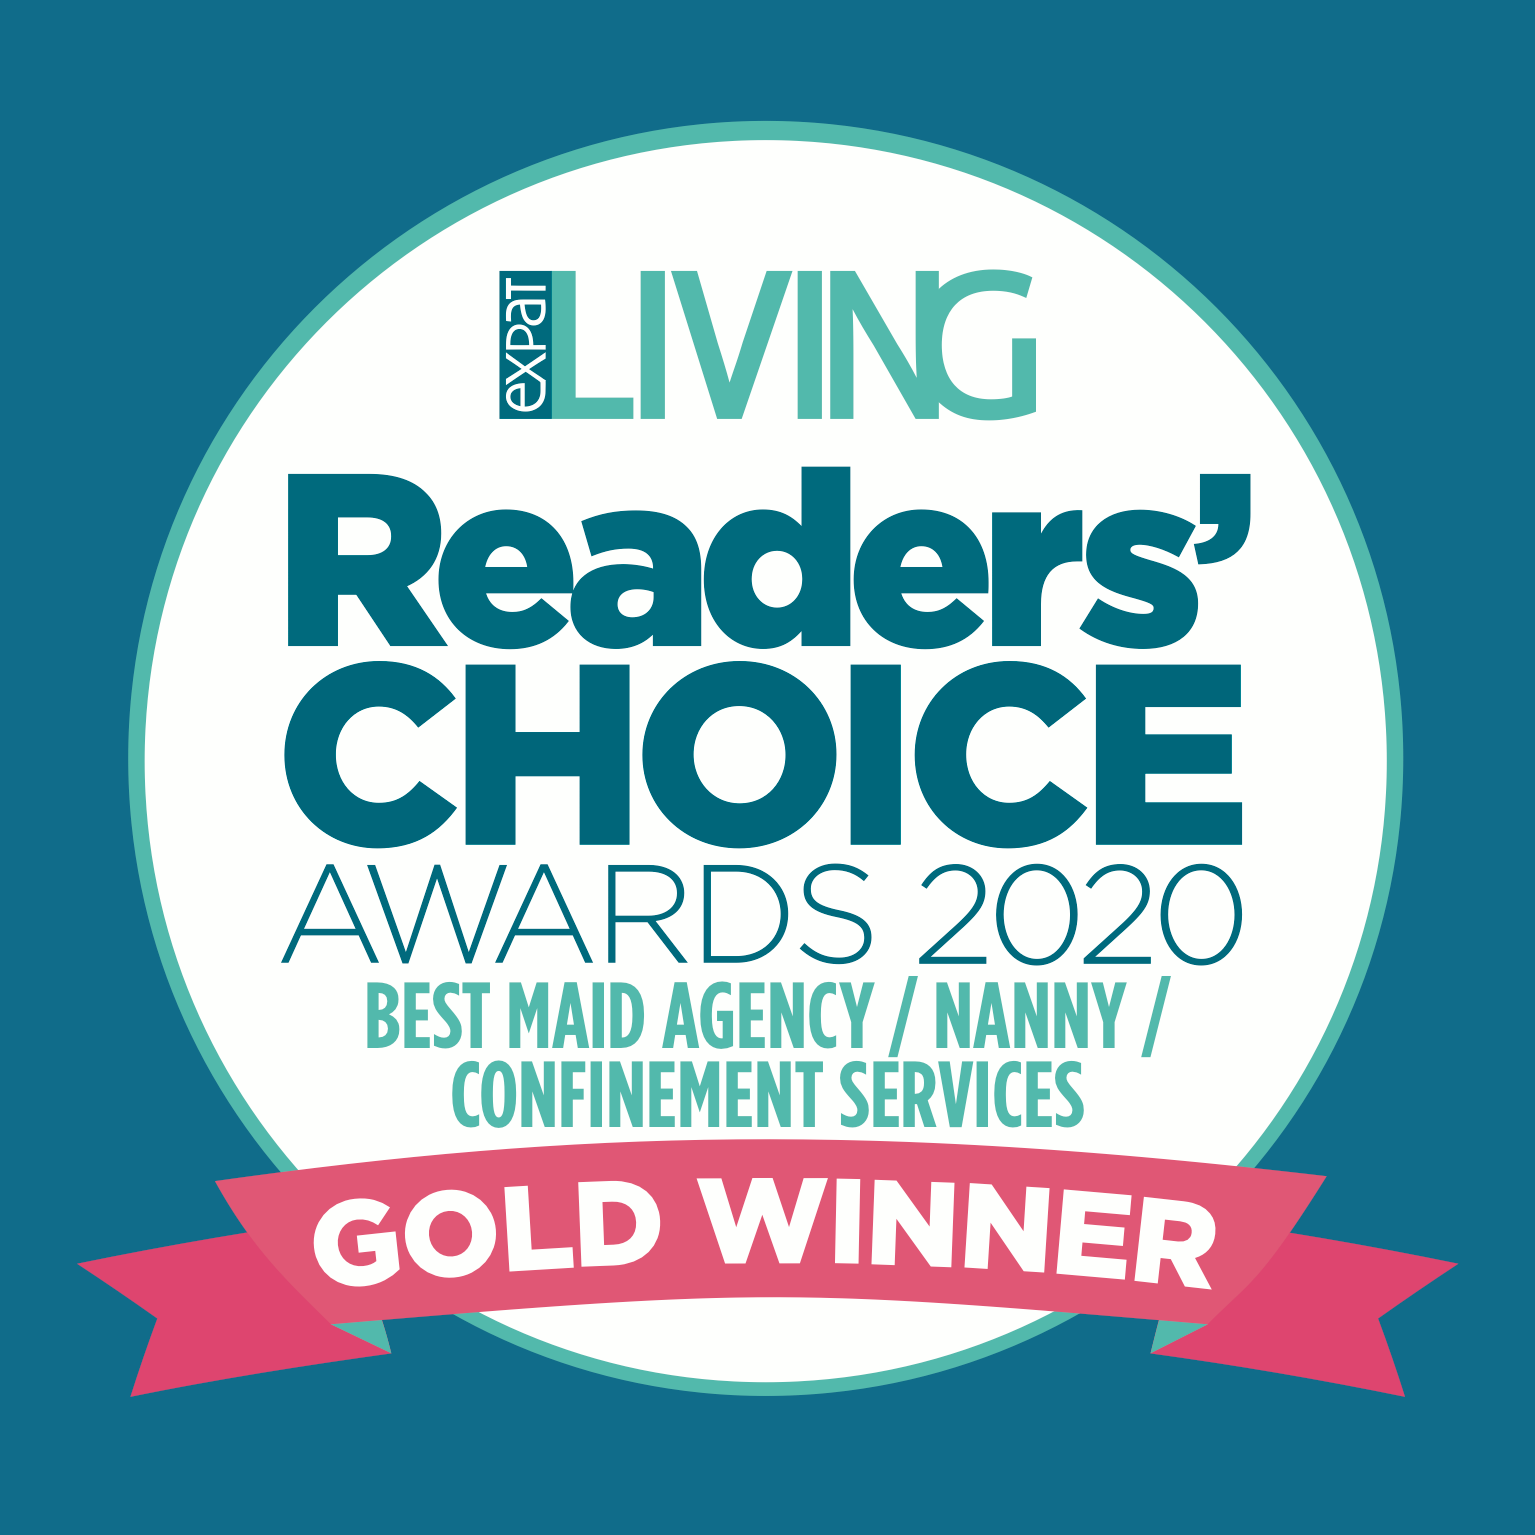 Gold winner of the Reader's Choice Awards 2020 for Employment Agency